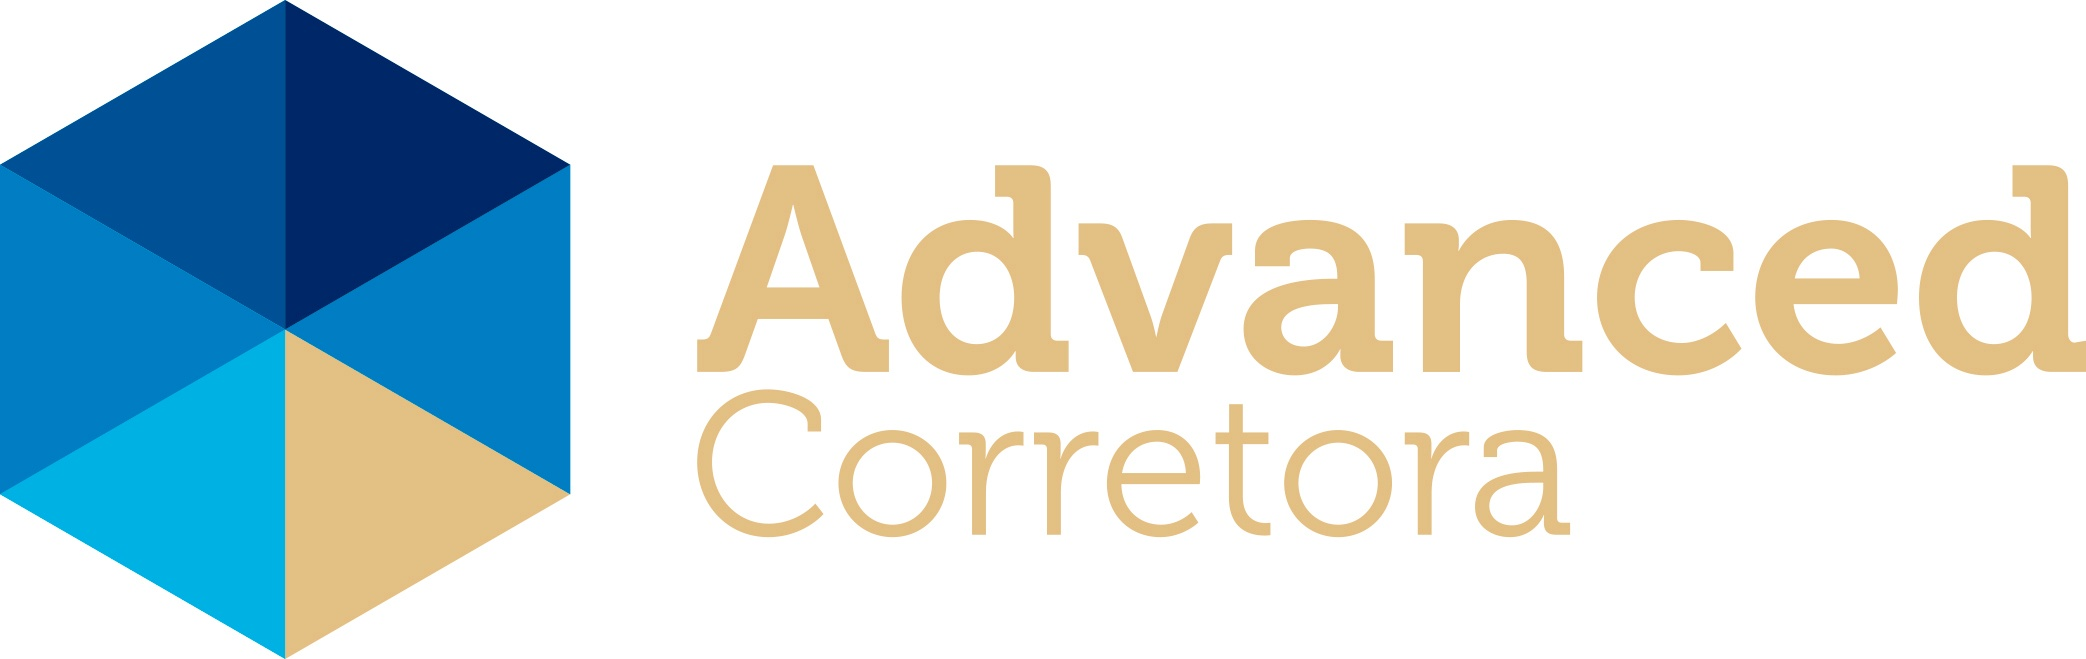 Valutrades adds Advanced Corretora as new payment method.